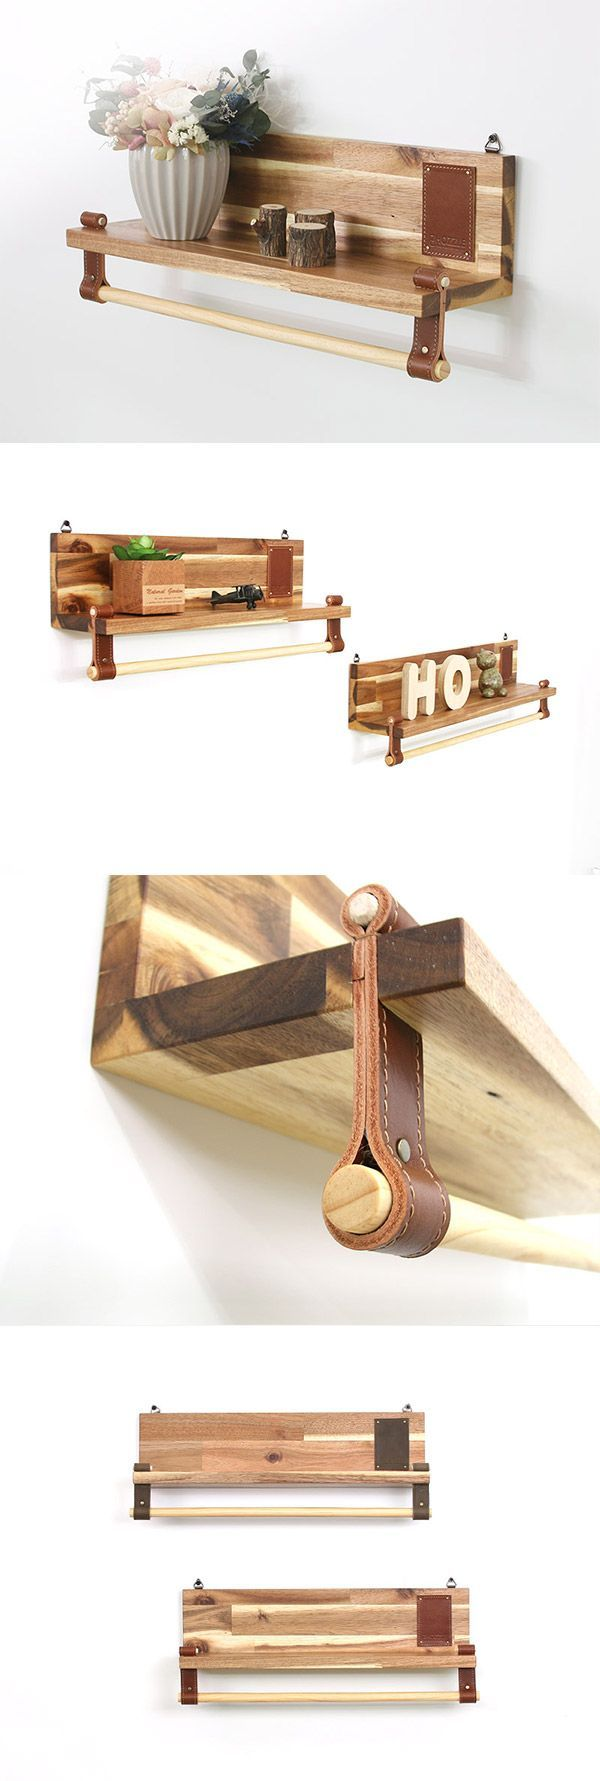 23 Hanging Wall Shelves Furniture Designs Ideas Plans: Wood Art Decoration Wall Hangings